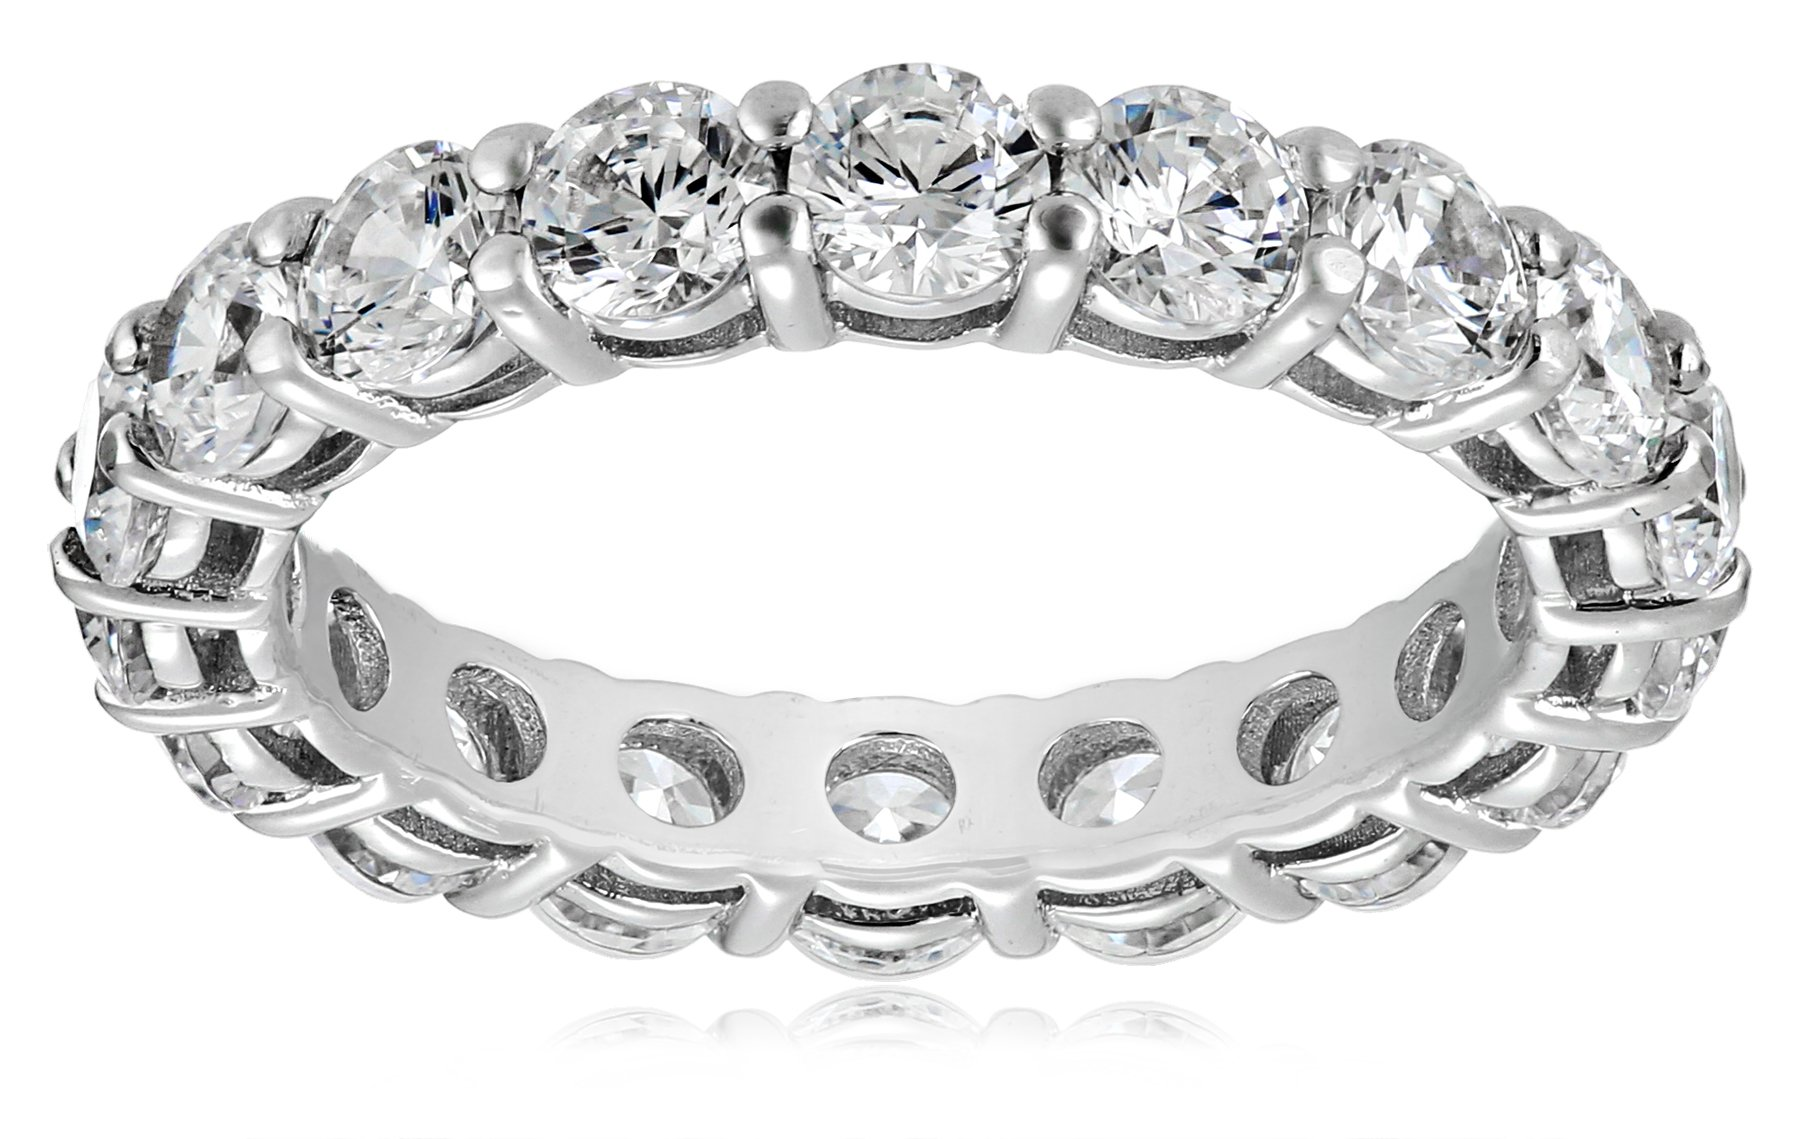 Platinum-Plated Sterling Silver All-Around Band Ring set with Round Swarovski Zirconia (3 cttw), Size 6 by Amazon Collection